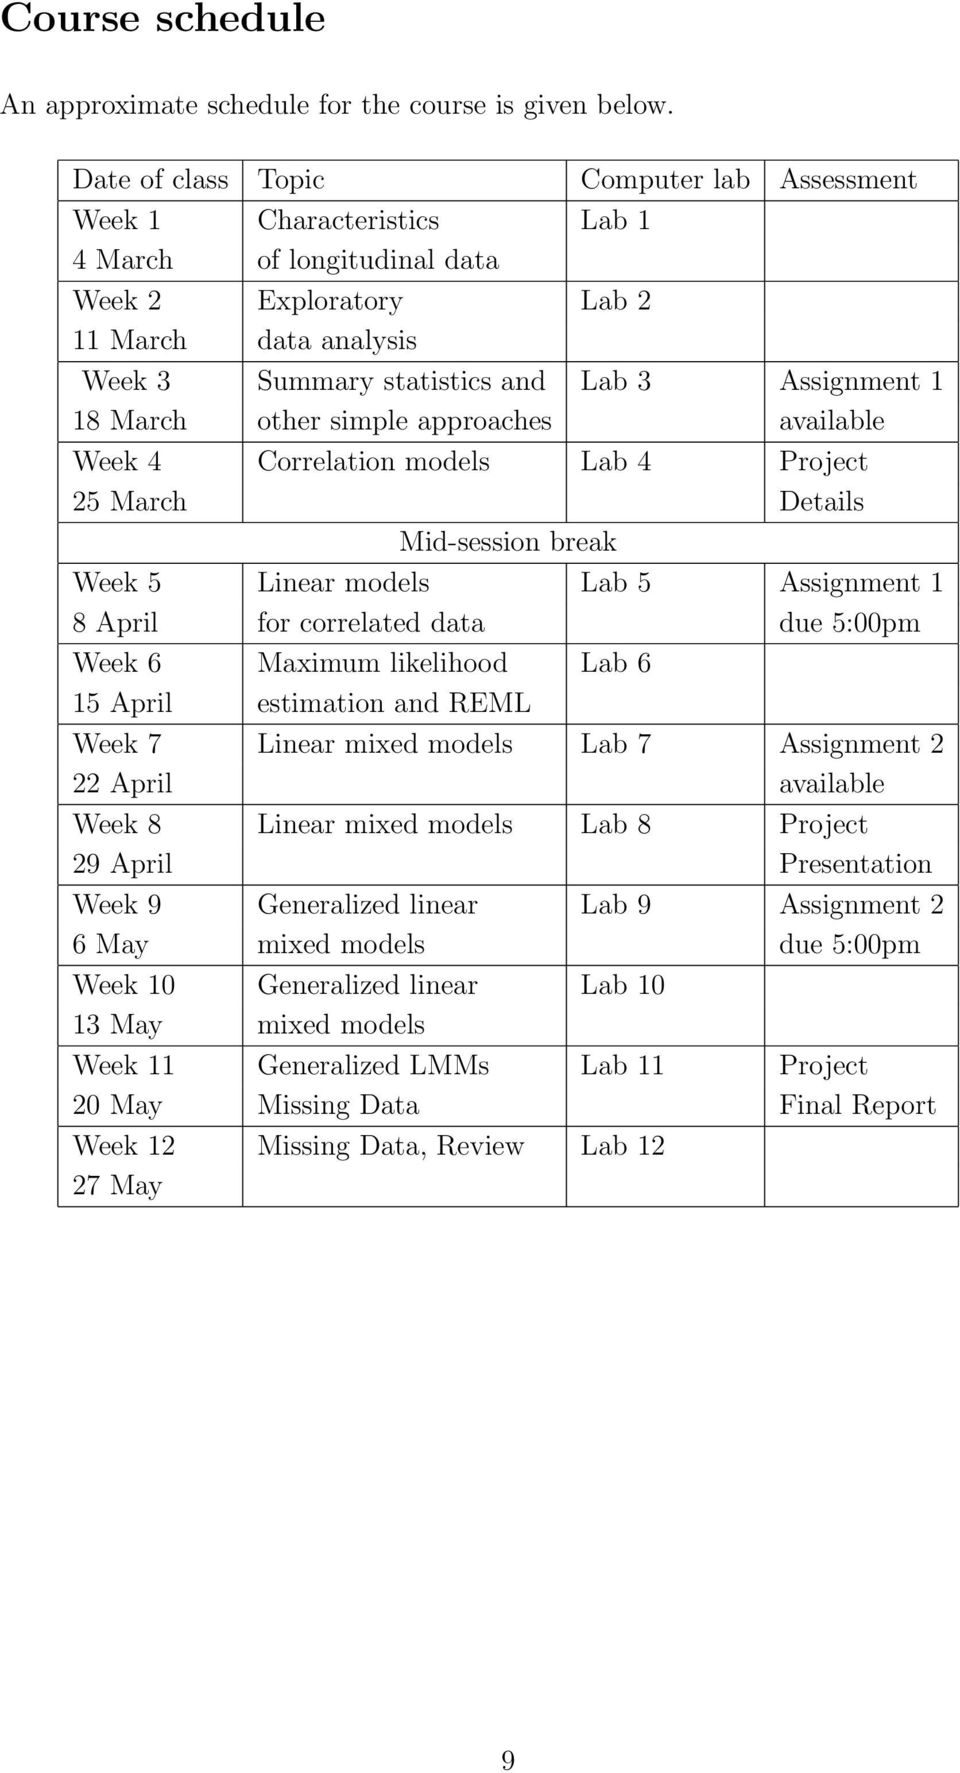 18 March other simple approaches available Week 4 Correlation models Lab 4 Project 25 March Details Mid-session break Week 5 Linear models Lab 5 Assignment 1 8 April for correlated data due 5:00pm